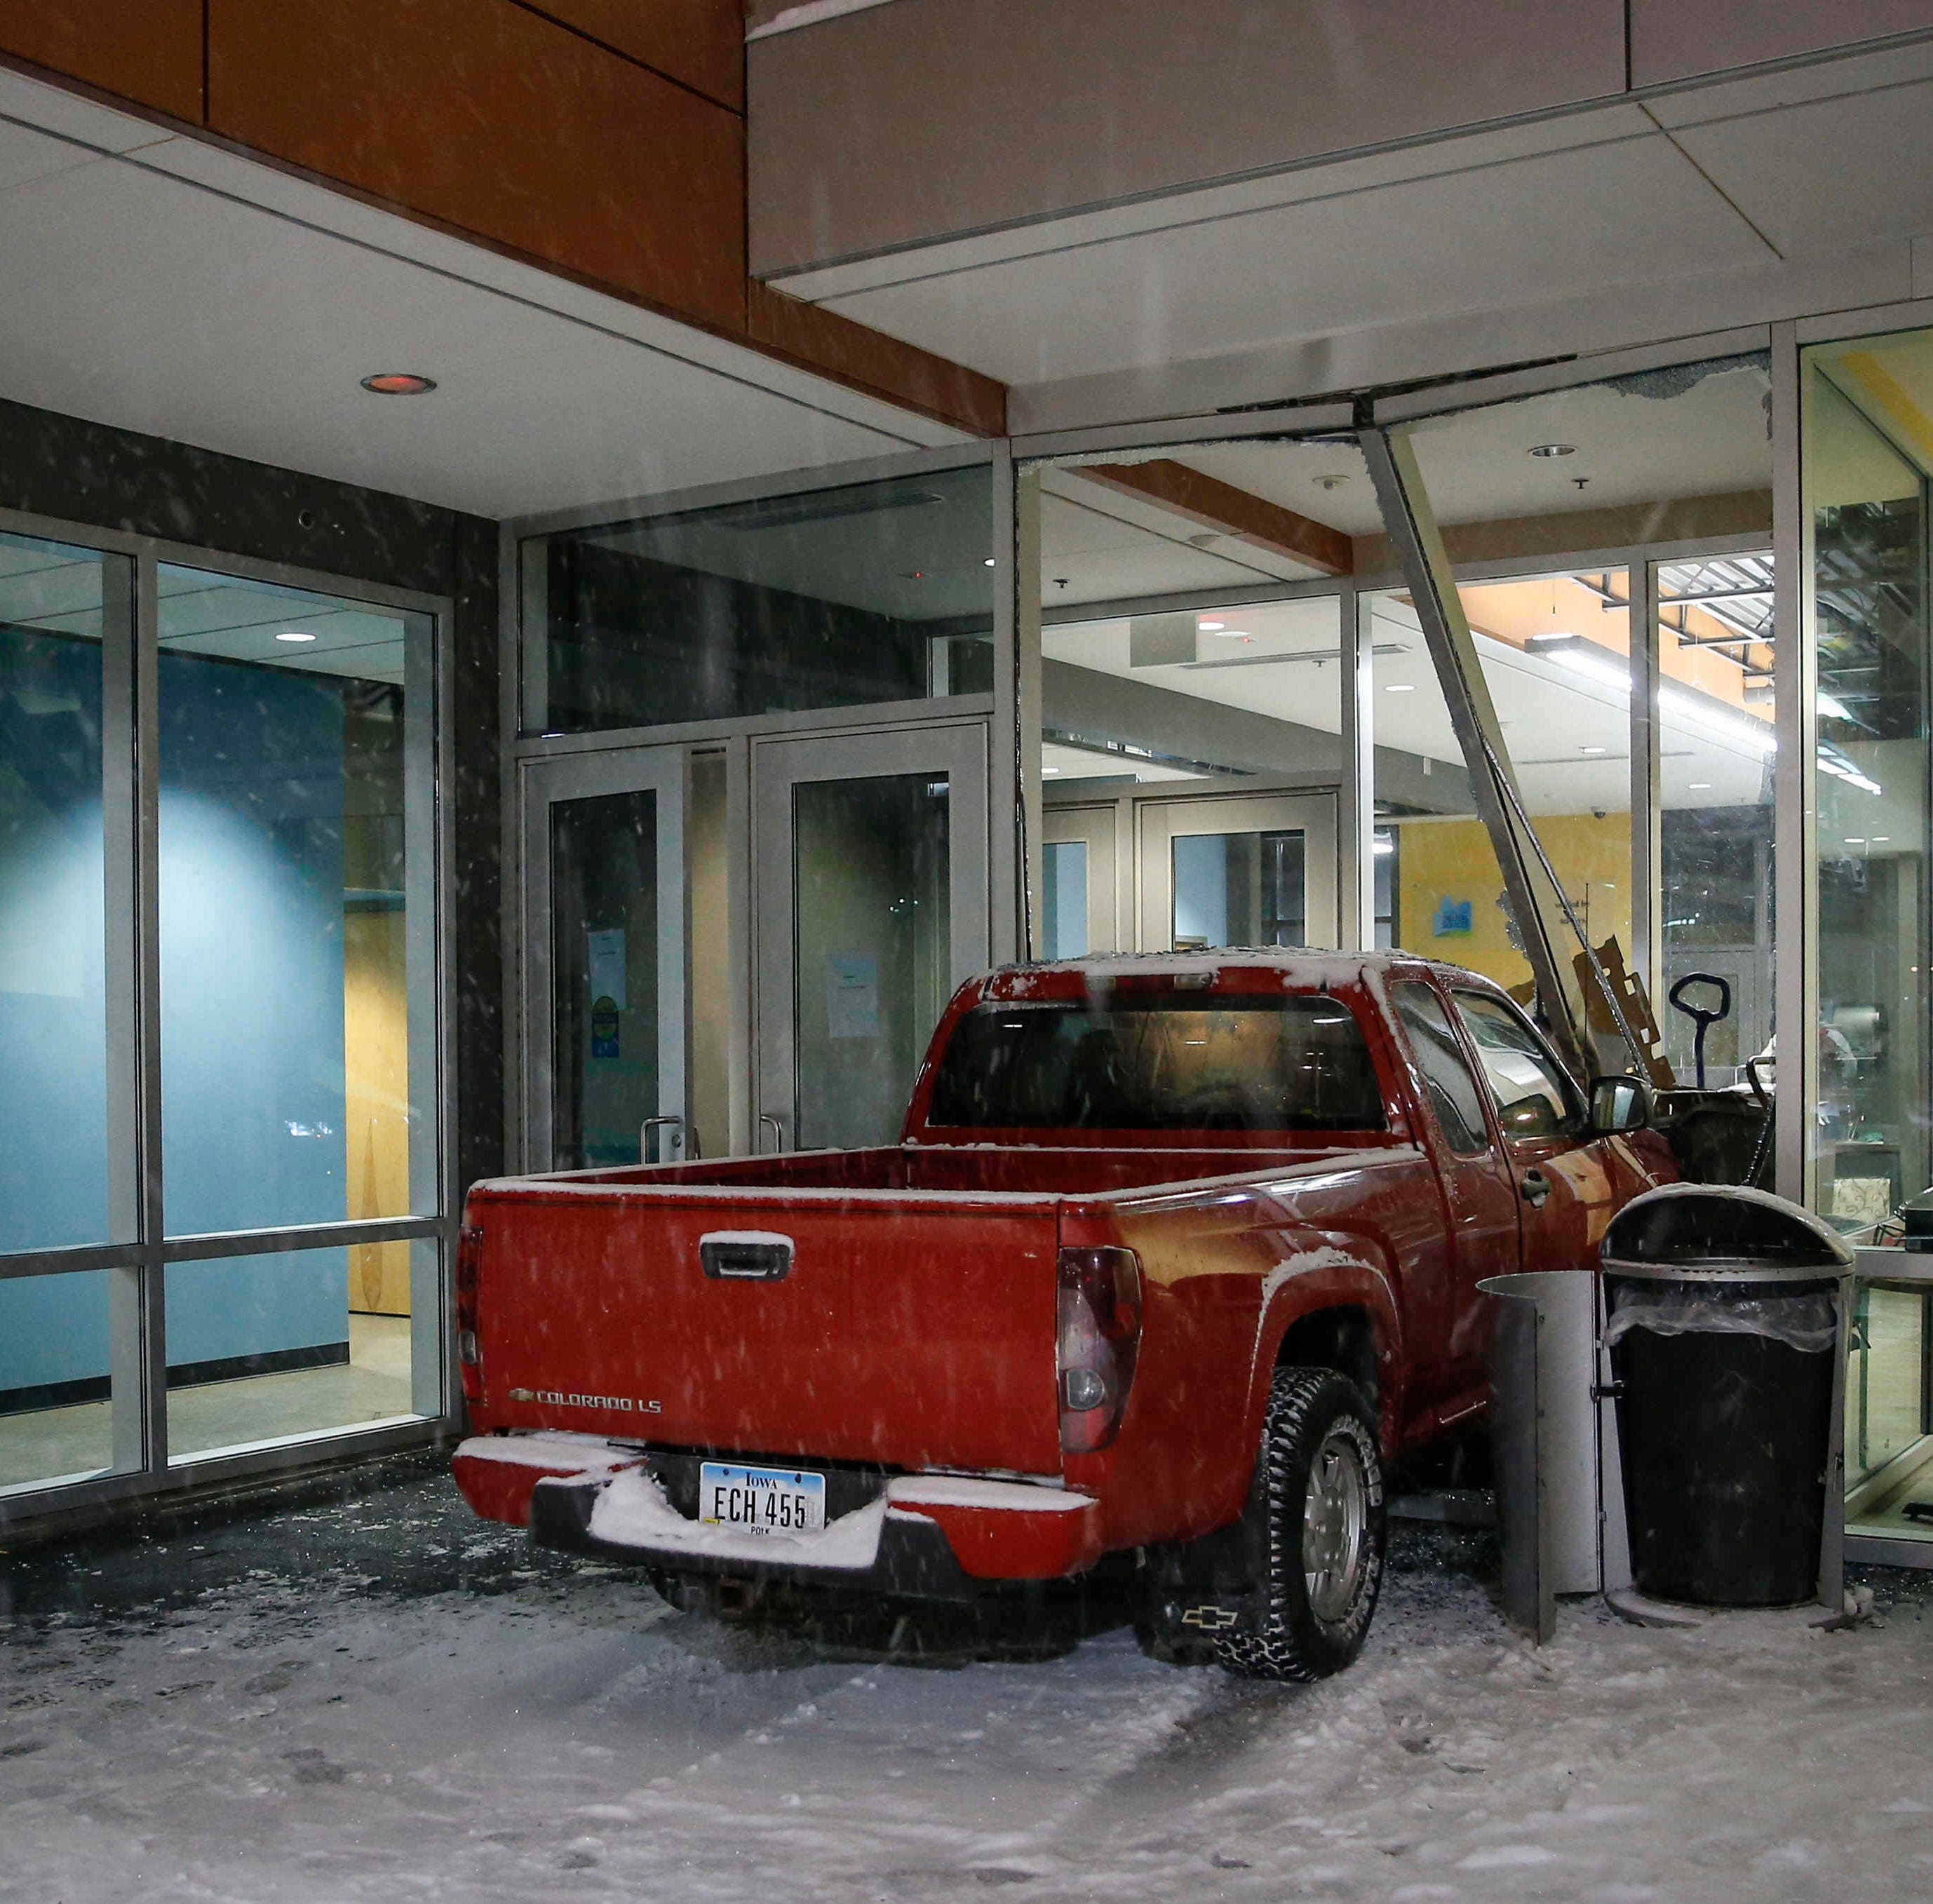 'We just heard the loudest bang': Stolen truck crashes into Des Moines homeless shelter during snowstorm